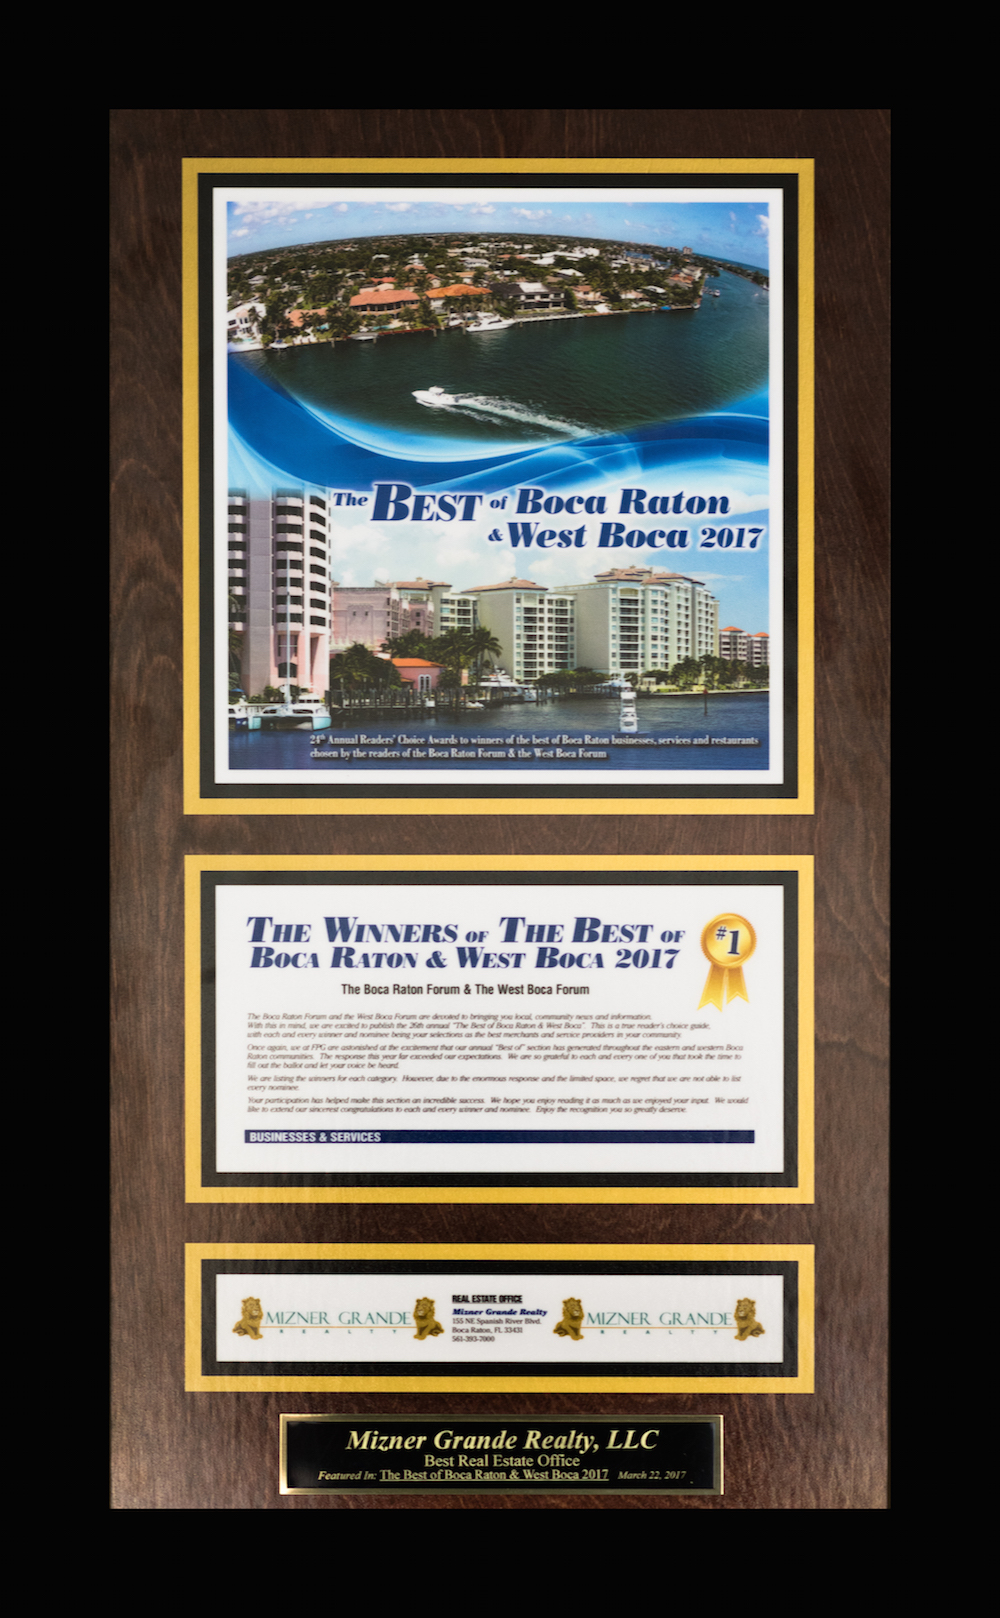 Best Real Estate Company Boca Raton Mizner Grande Realty